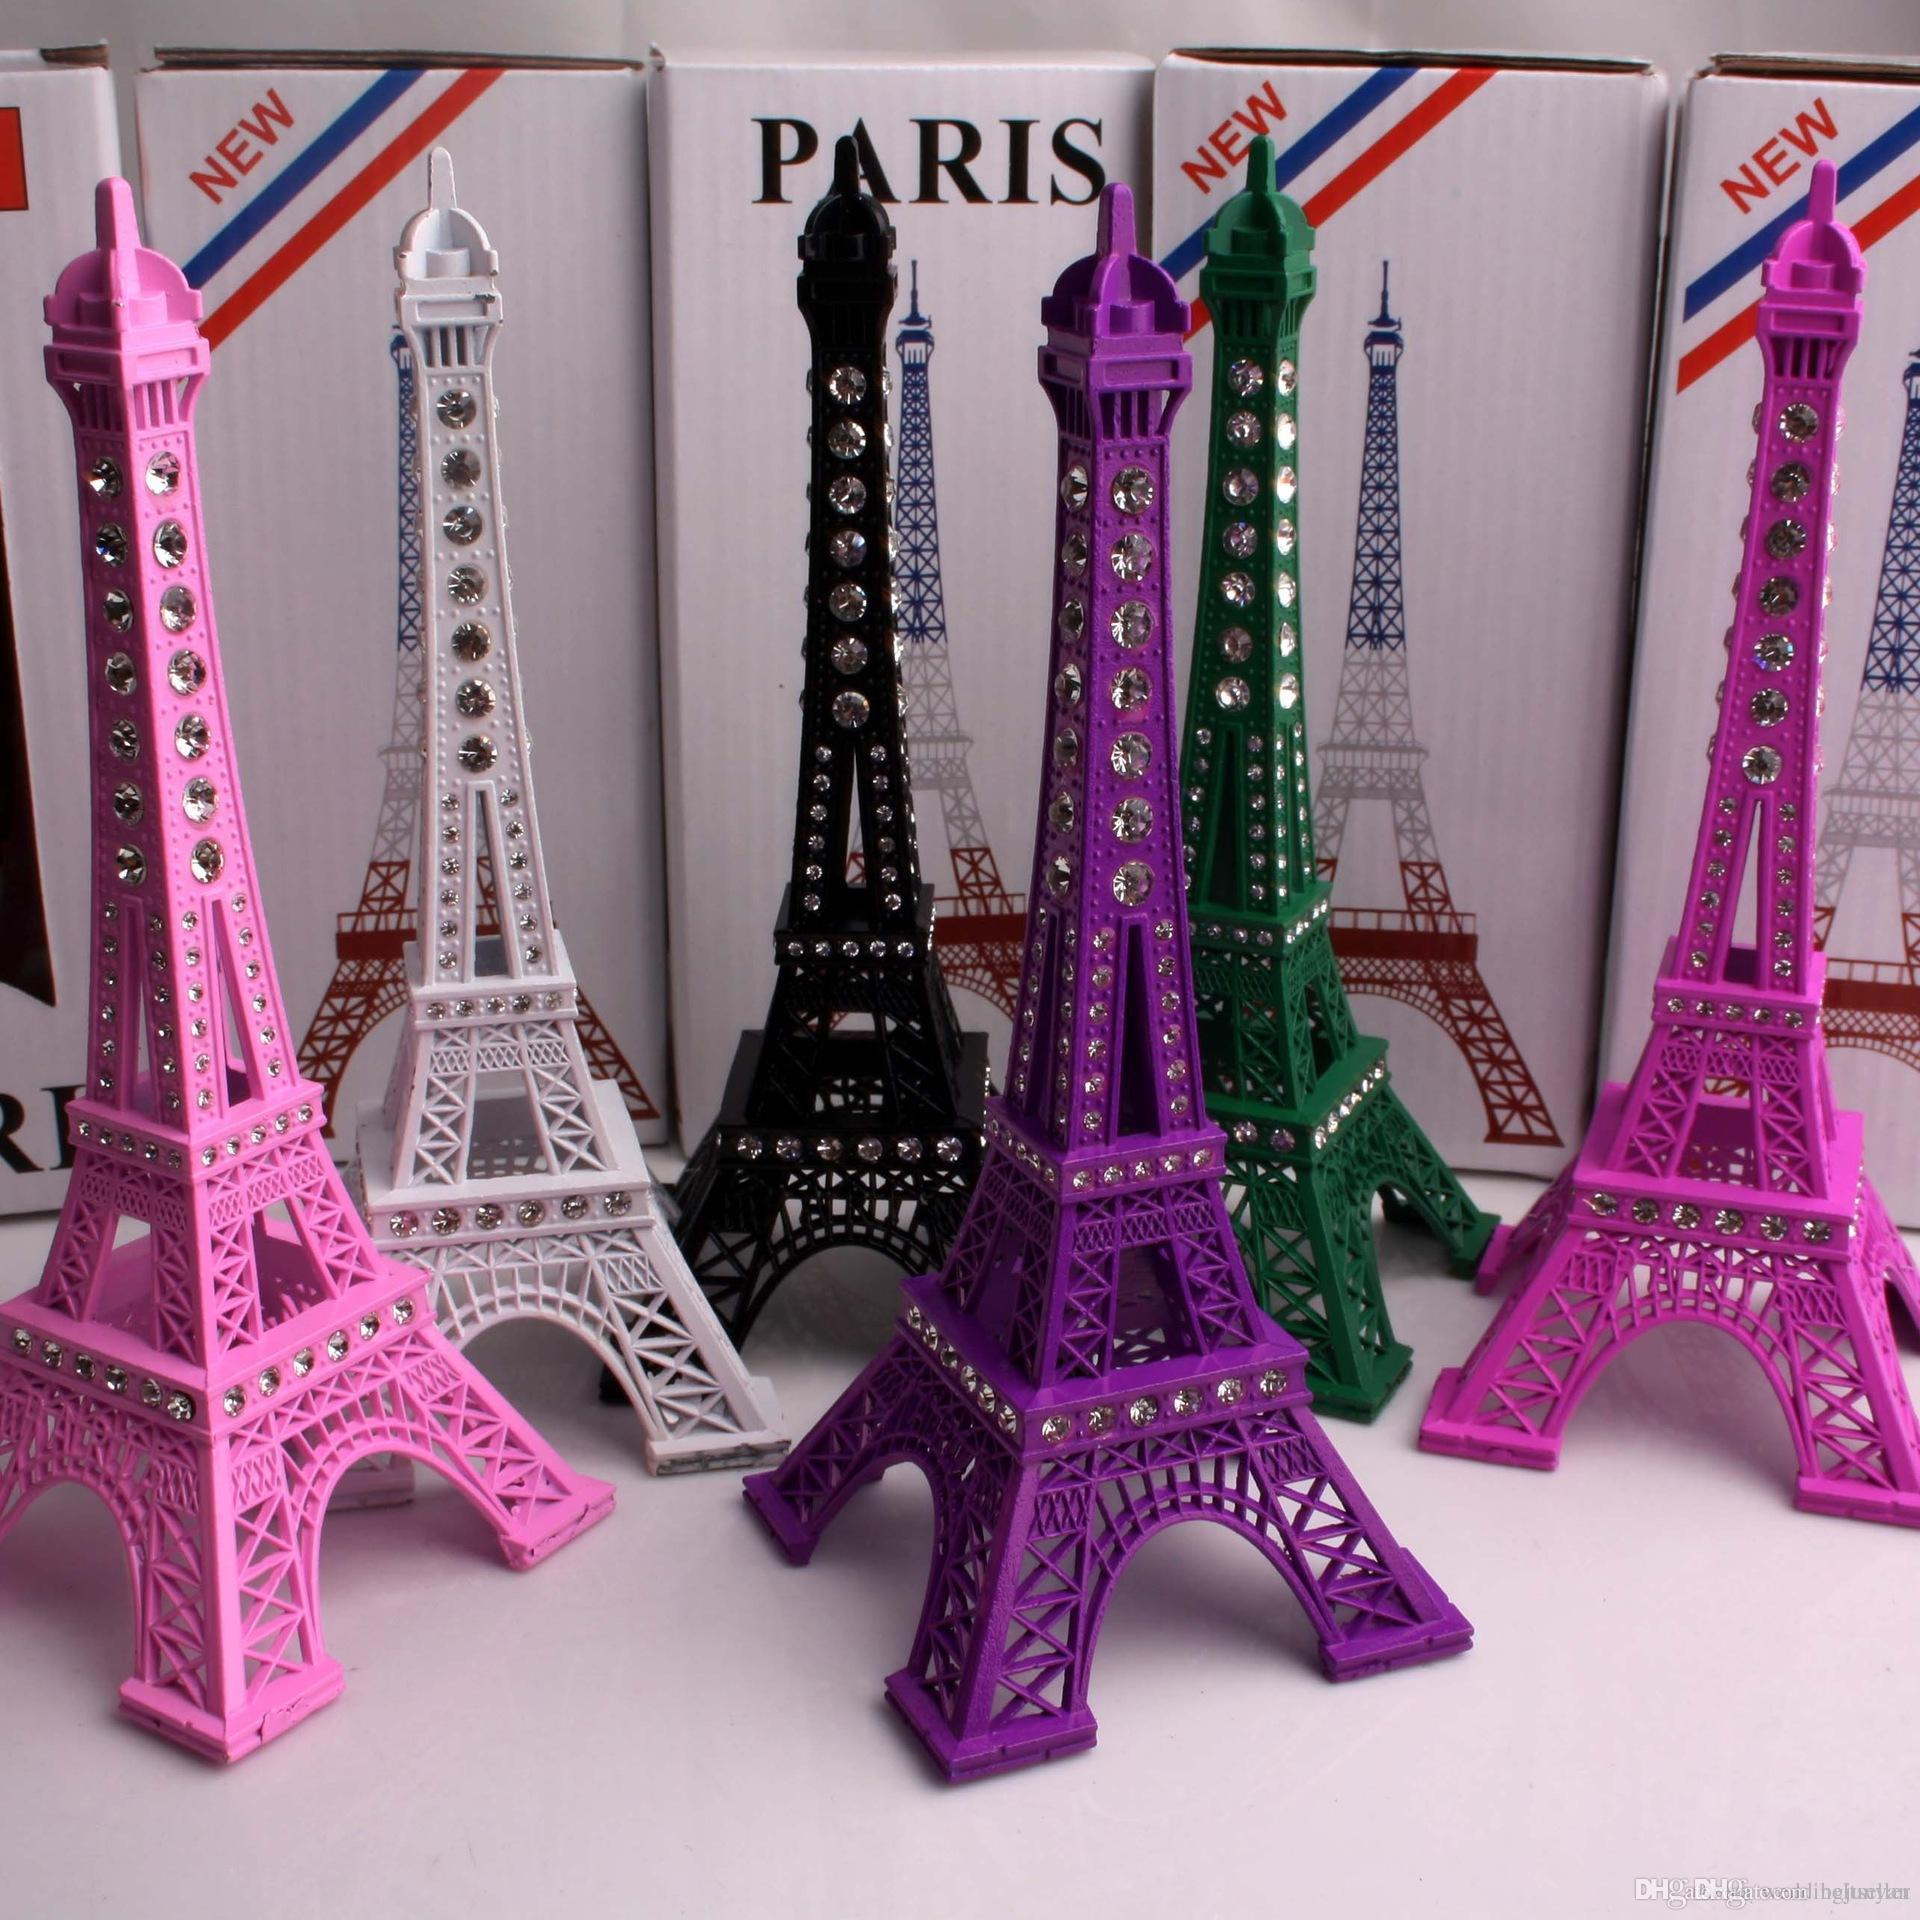 Eiffel Tower Wholesale | Eiffel Tower Statues for Sale | Eiffel Tower Centerpieces